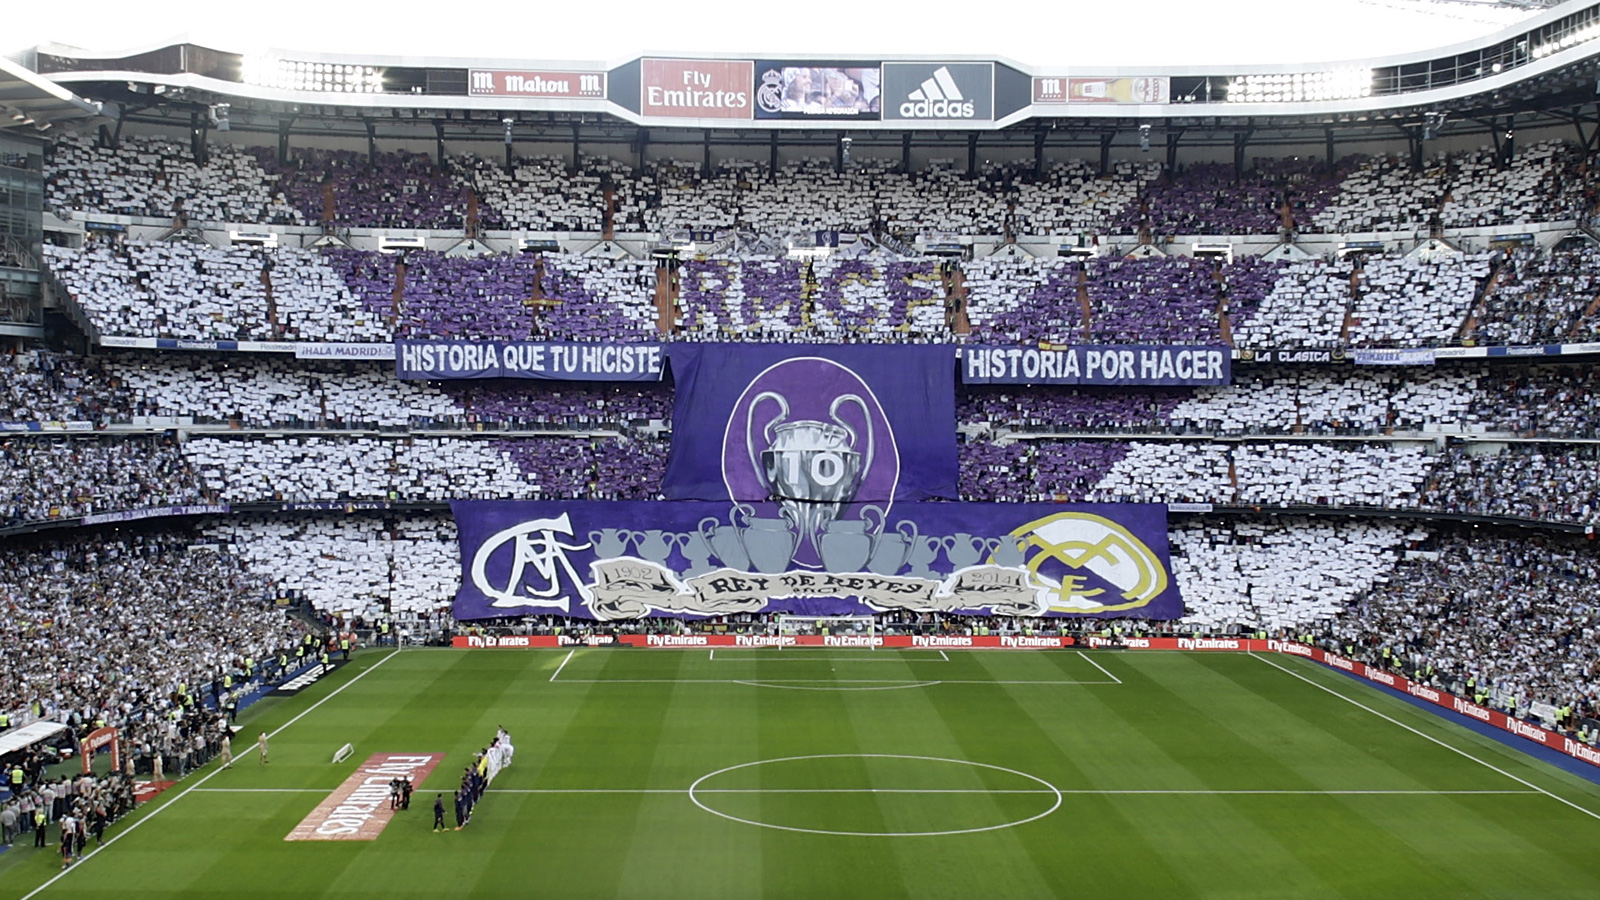 Real Madrid fans make a point to display the club's 10 European championships ahead of the October 2014 clash against rival Barcelona at the Bernabeu.